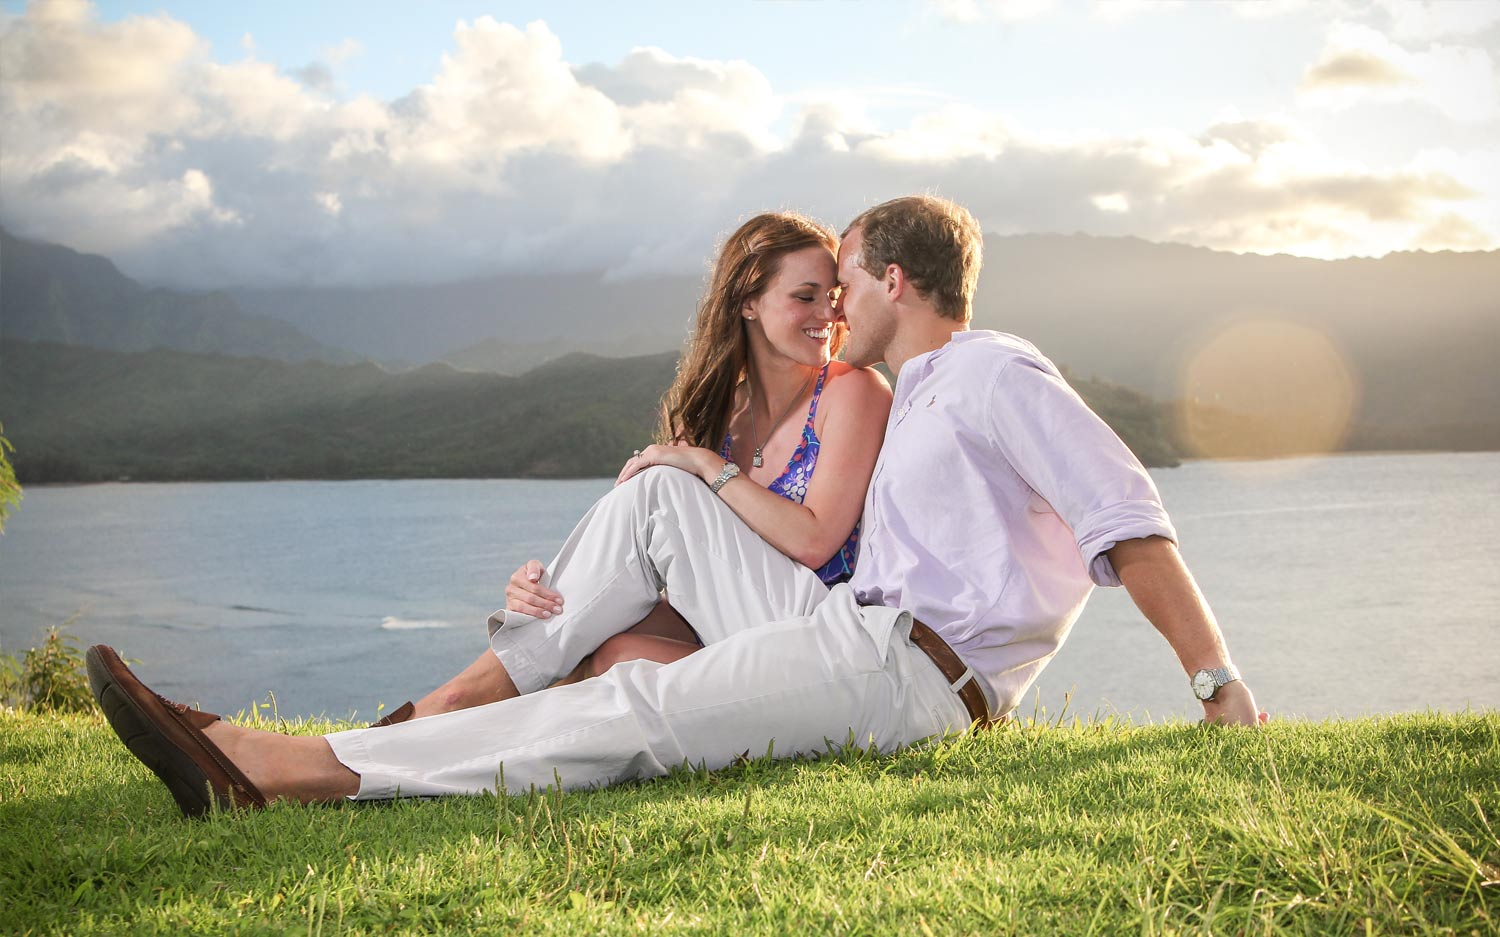 cinematography-services-hawaii-california.jpg